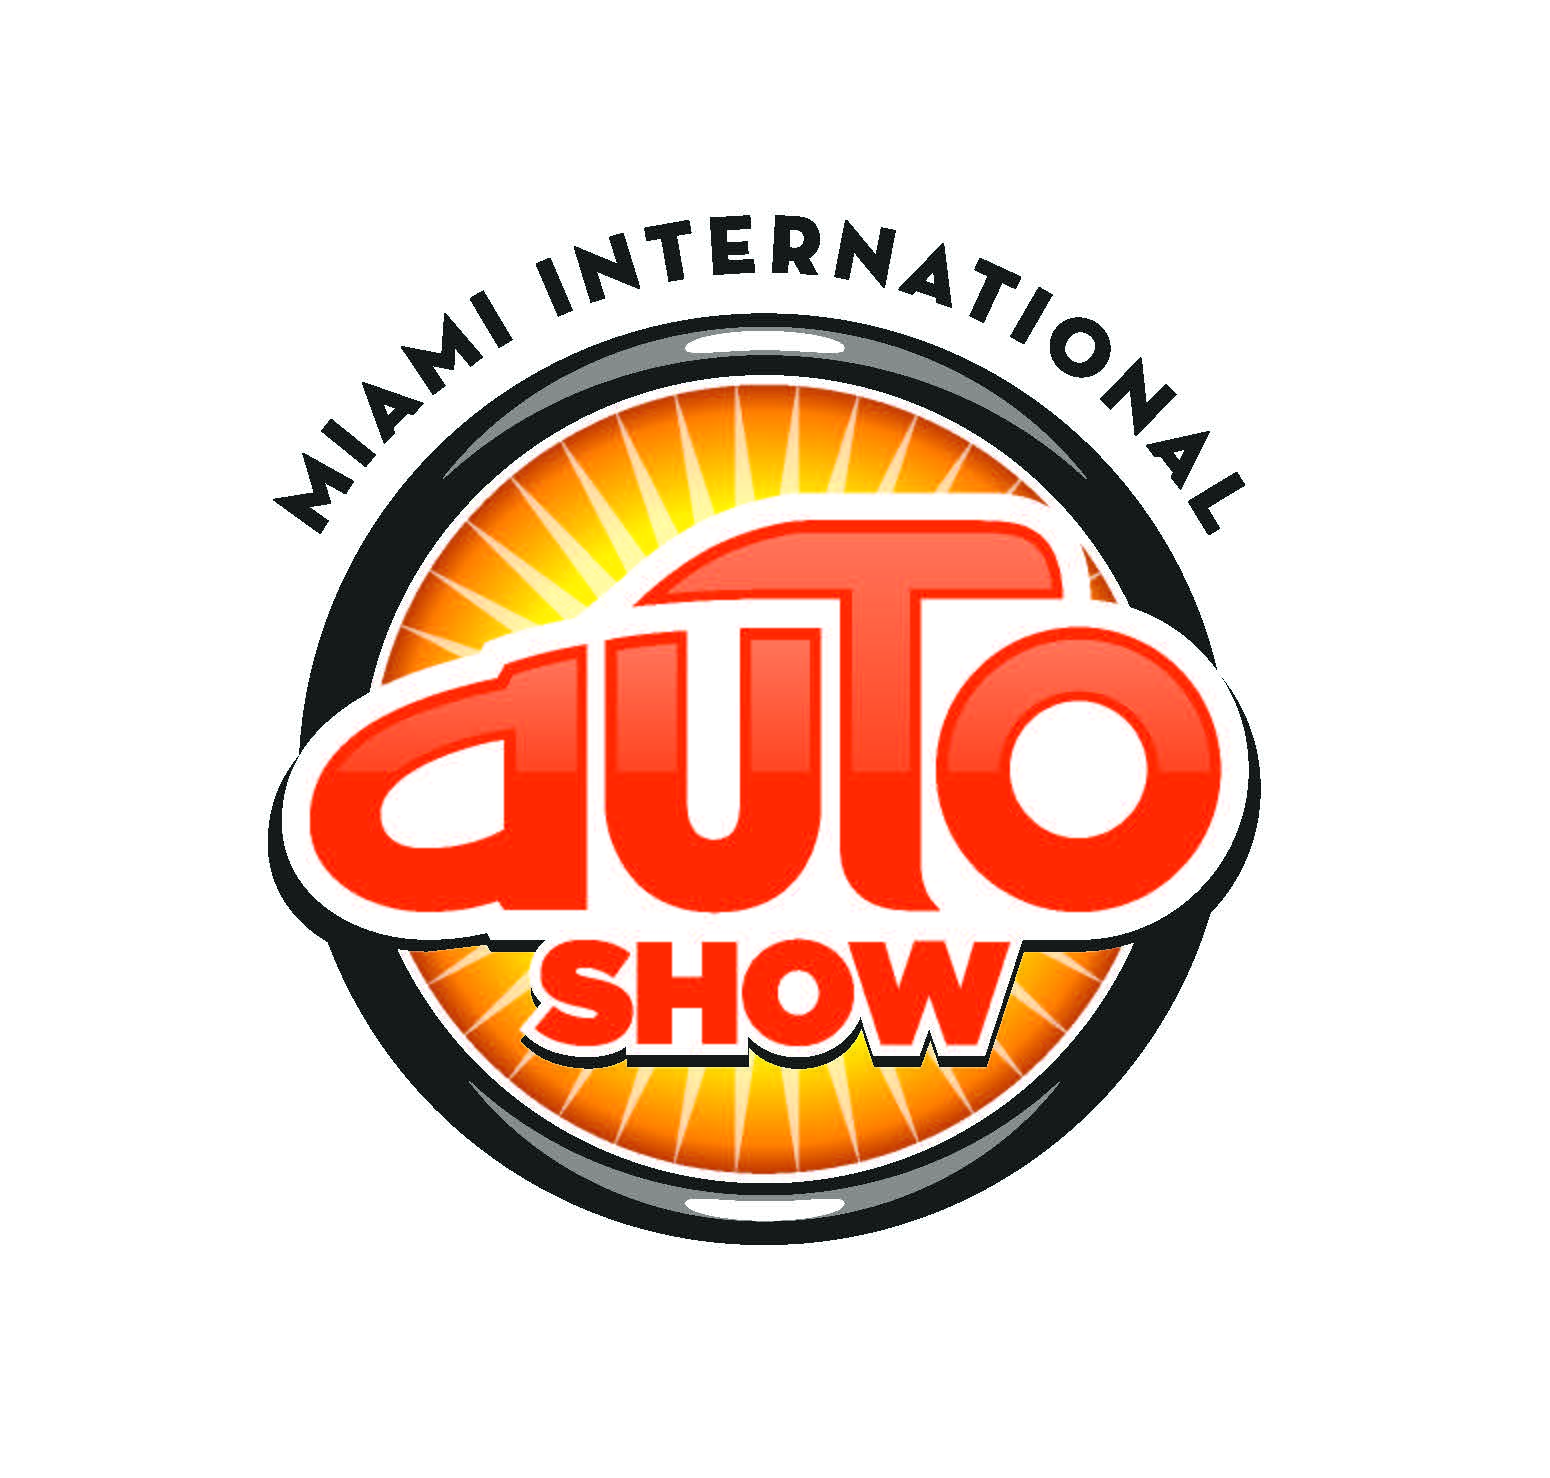 Car Freight, INC. en Miami International Auto Show 2013